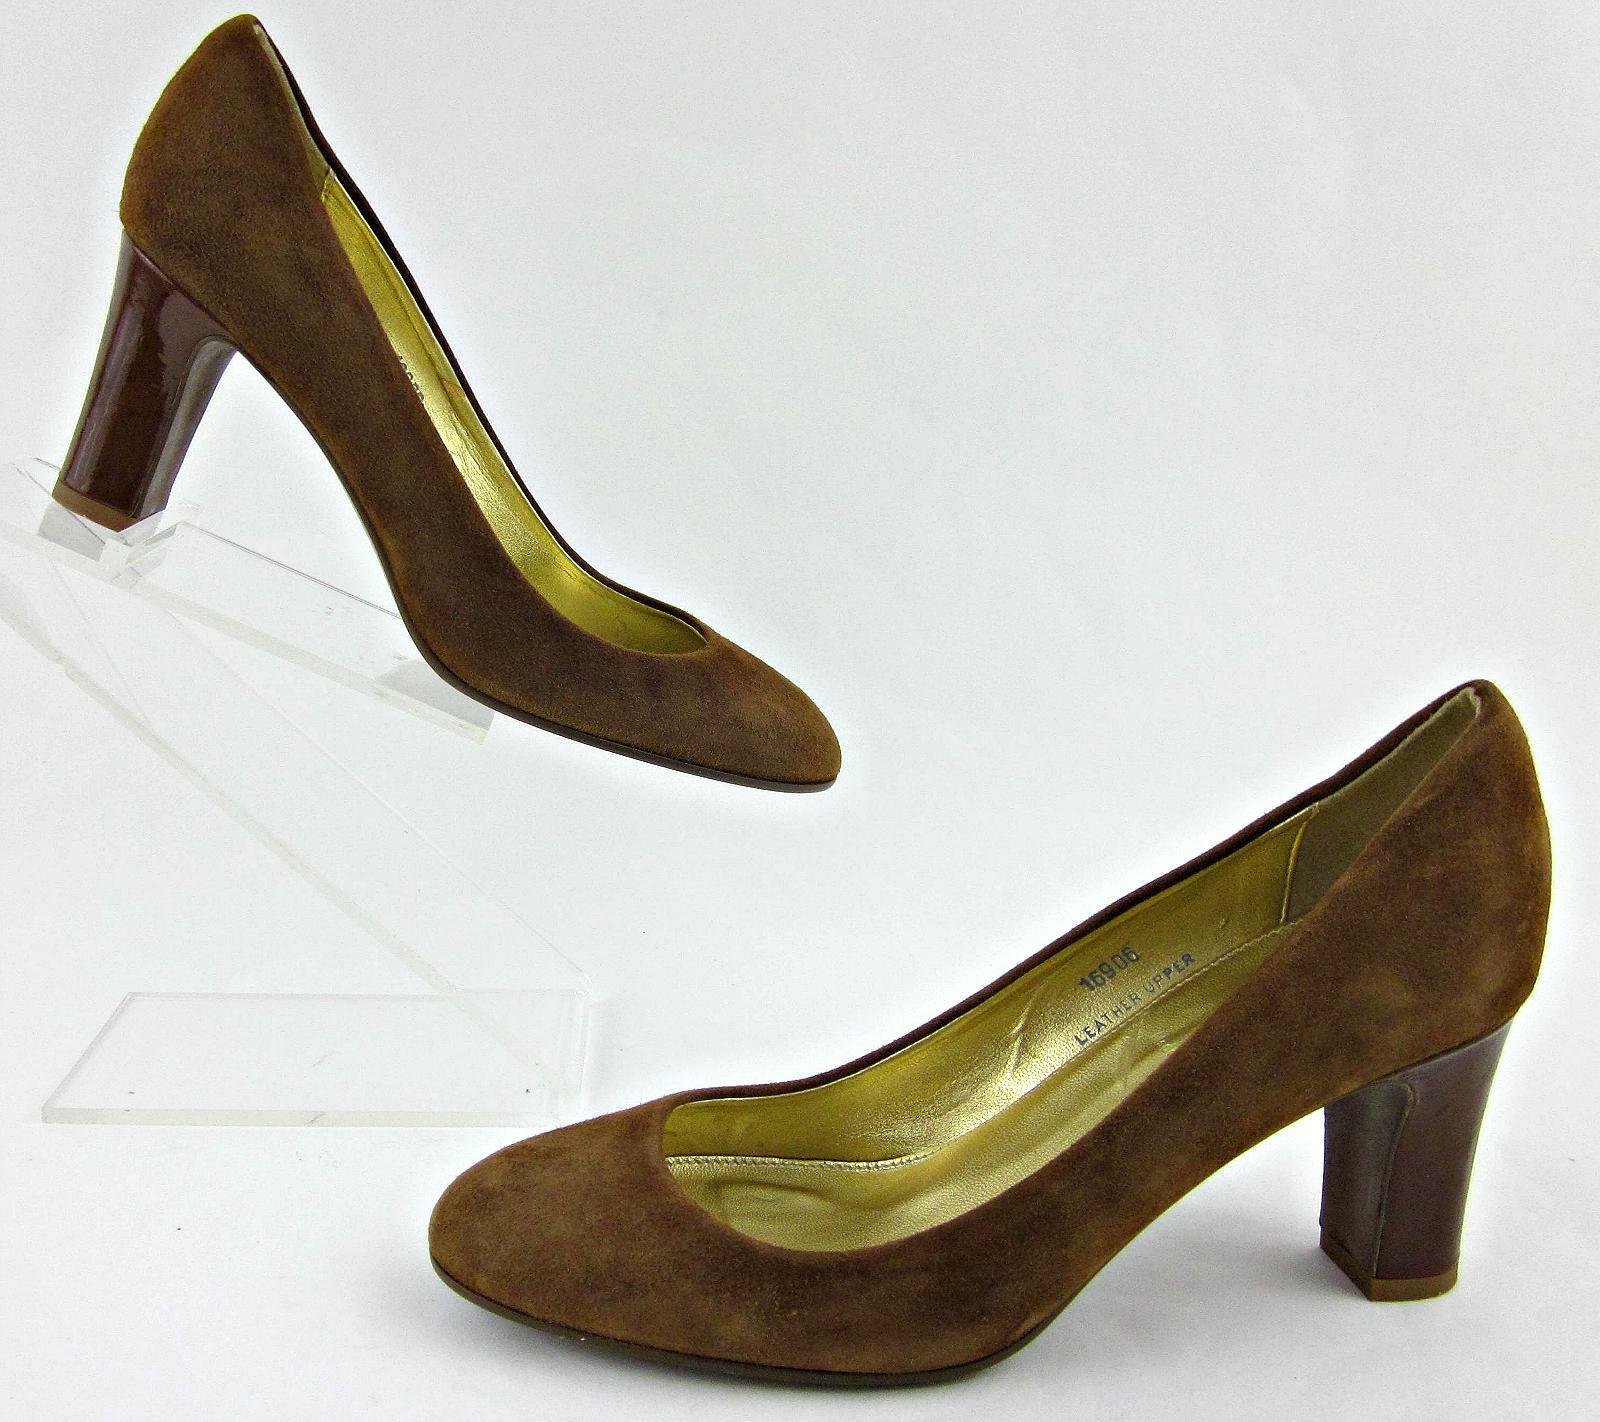 J.Crew Round Toe Dress Pumps Camel Suede Leder Sz 7 Made In